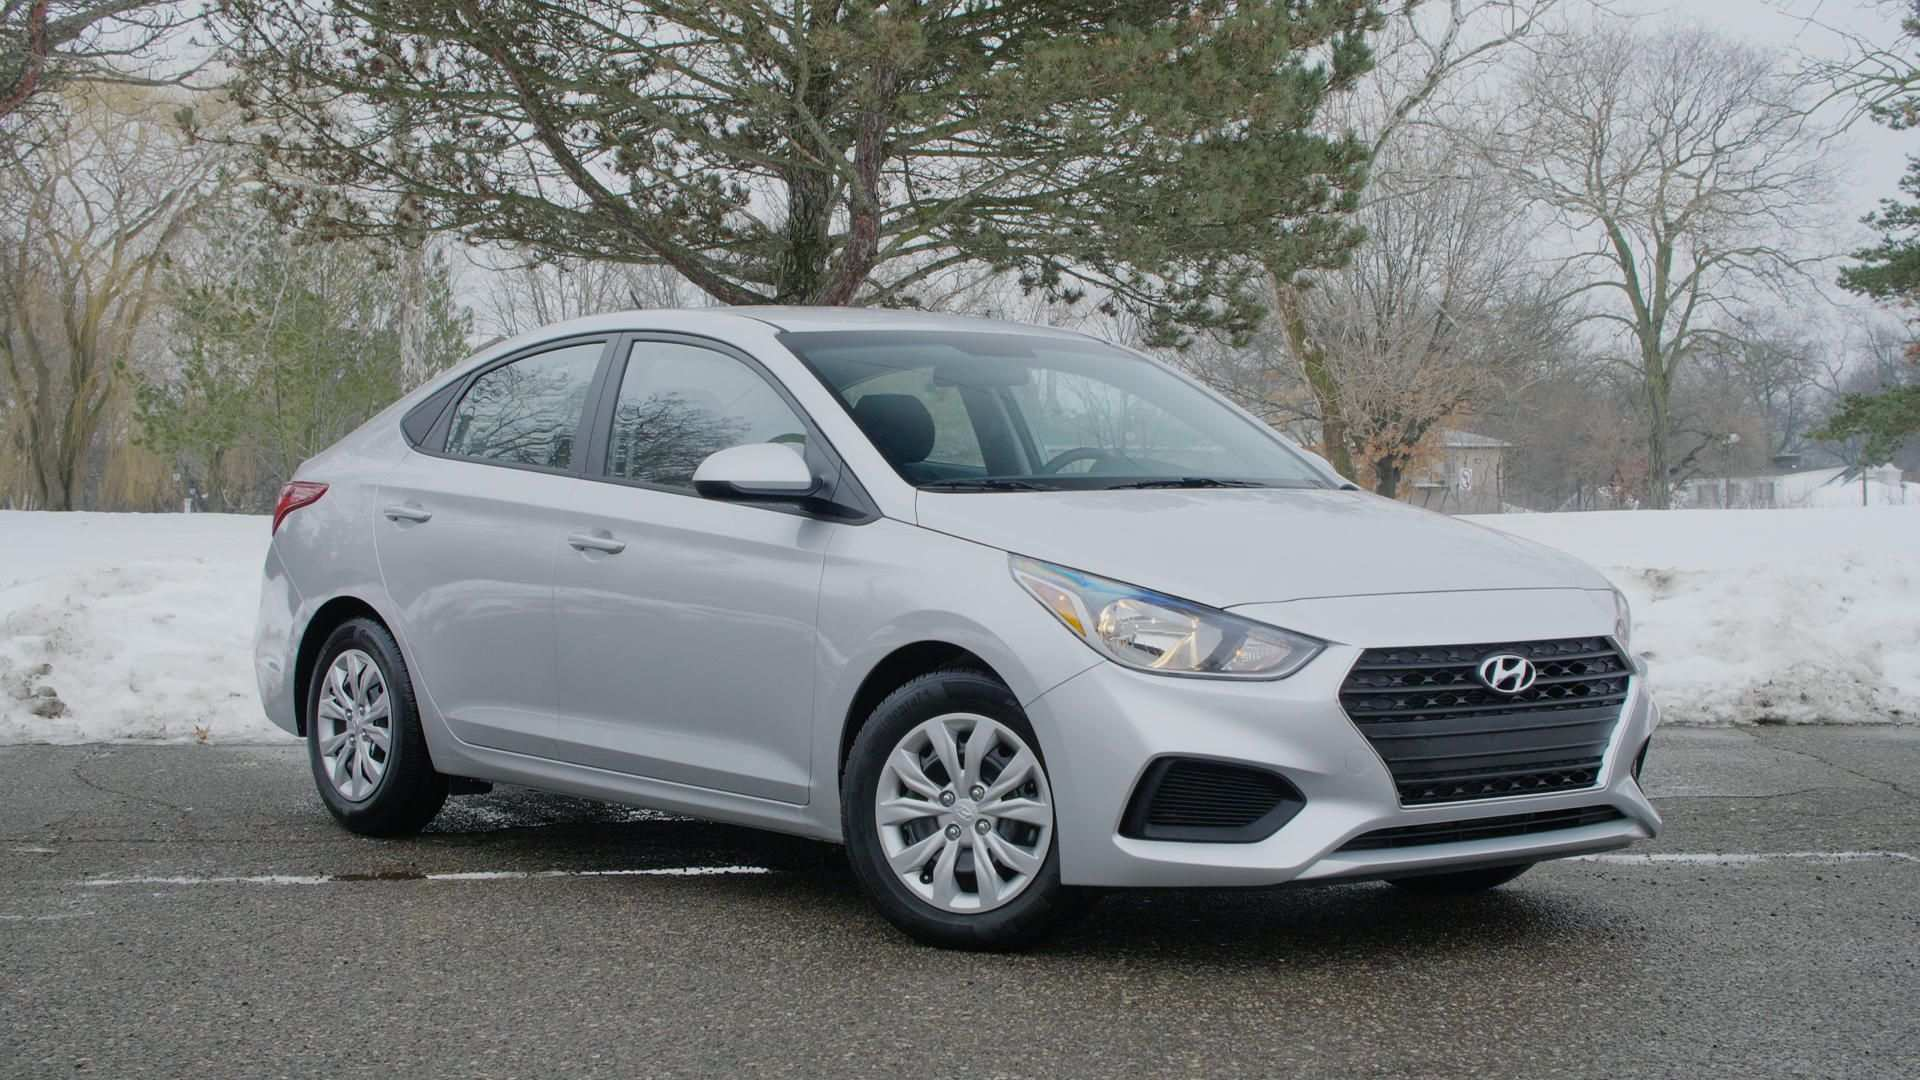 78 The Best 2020 Hyundai Accent Interior